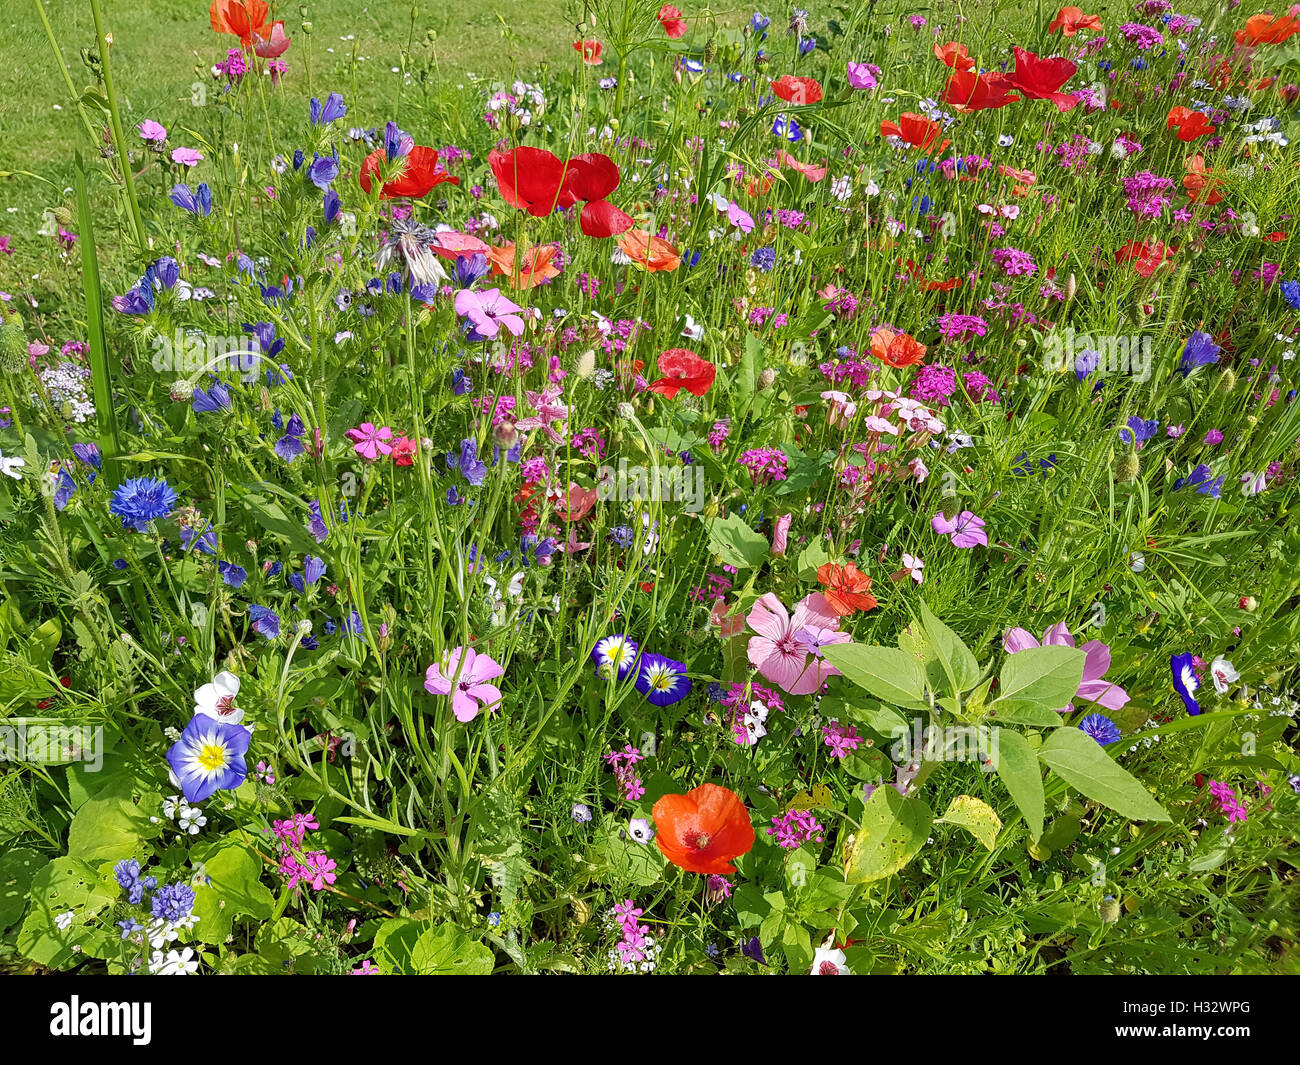 Blumenwiese, Wiesenblumen, Wildblumen Stock Photo